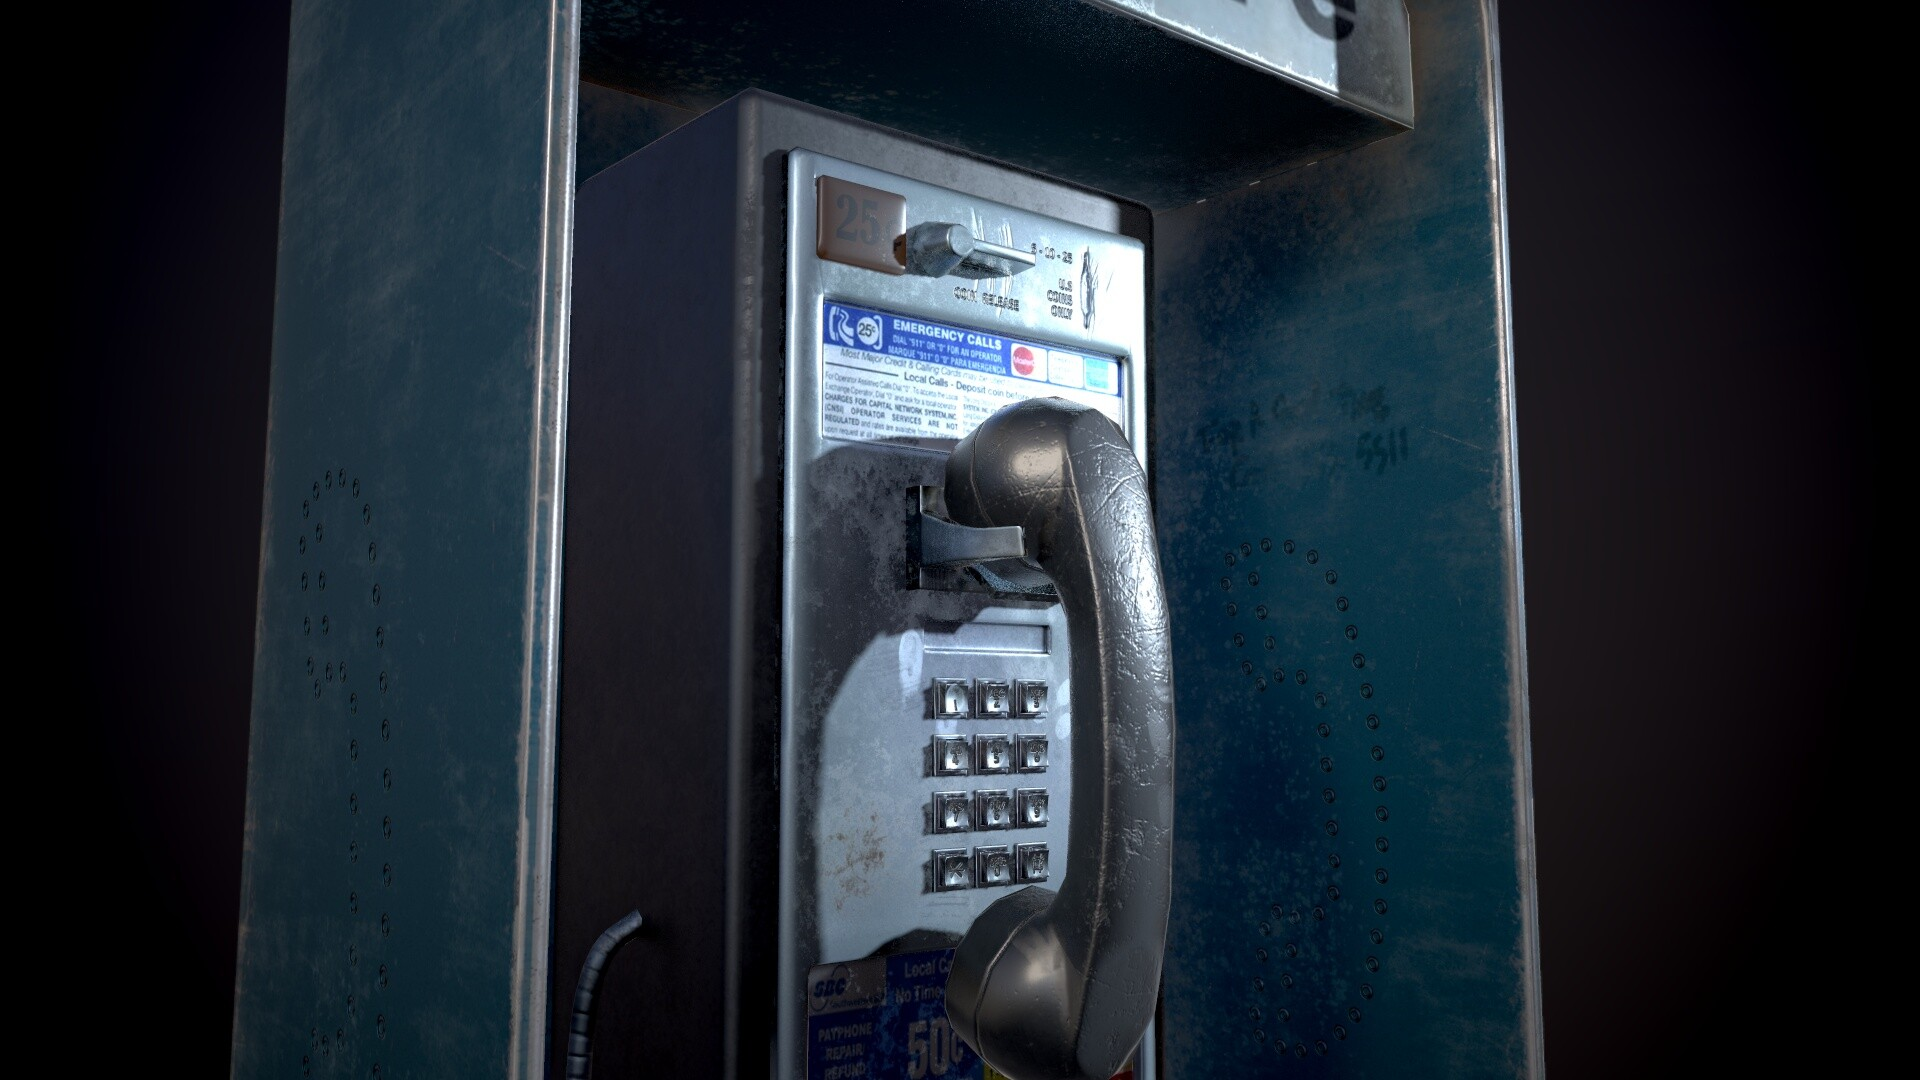 PAYPHONE REALTIME ASSETT